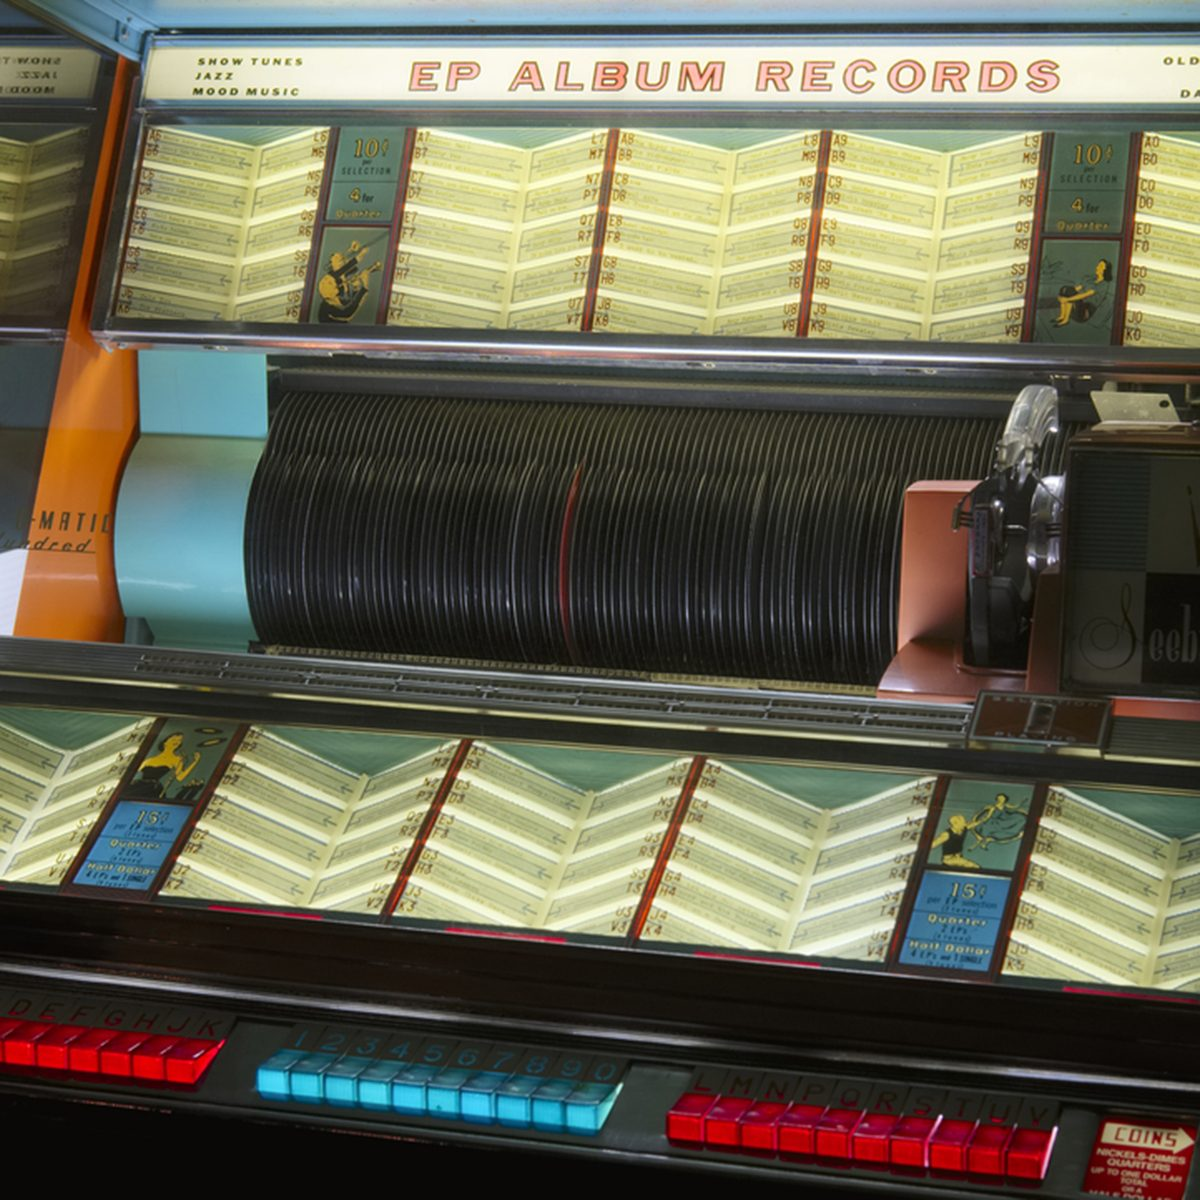 London, England - December 27th 2017: Jukebox Vintage Retro Music Record Player Collection Exhibition; Shutterstock ID 783475357; Job (TFH, TOH, RD, BNB, CWM, CM): TOH